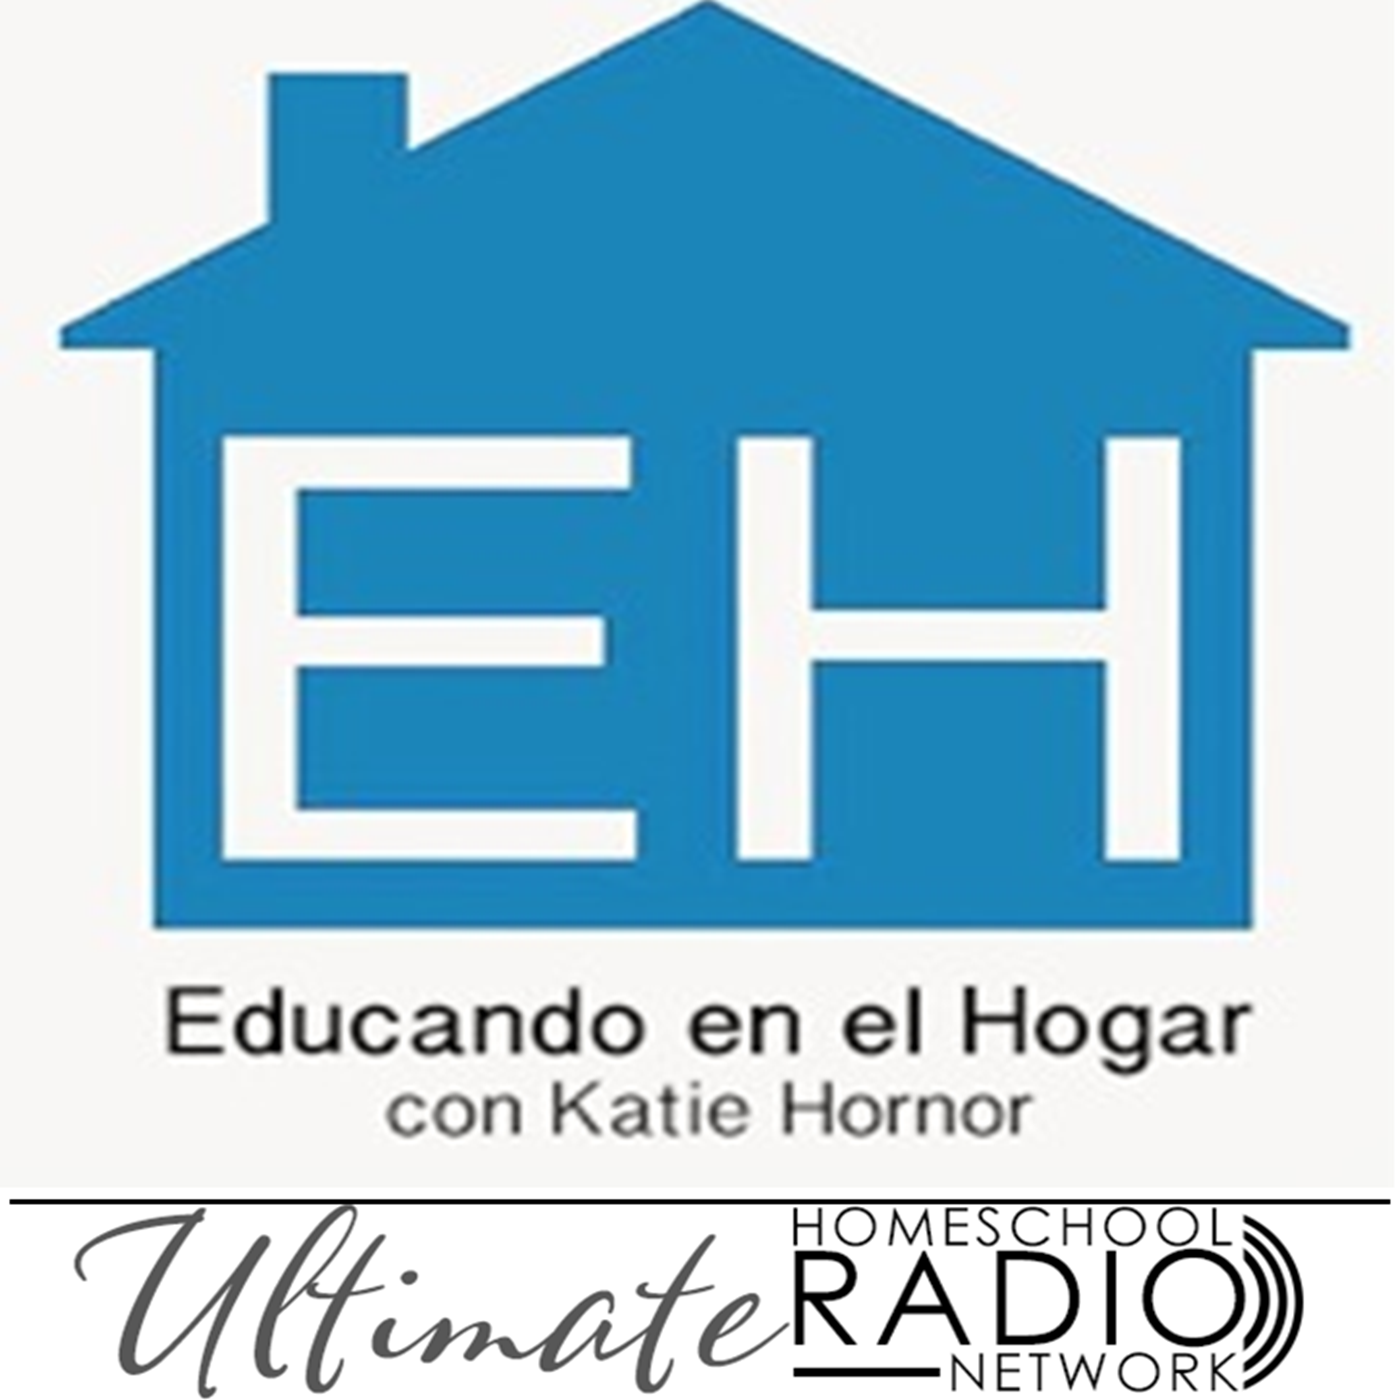 Educando en el Hogar – Ultimate Homeschool Radio Network